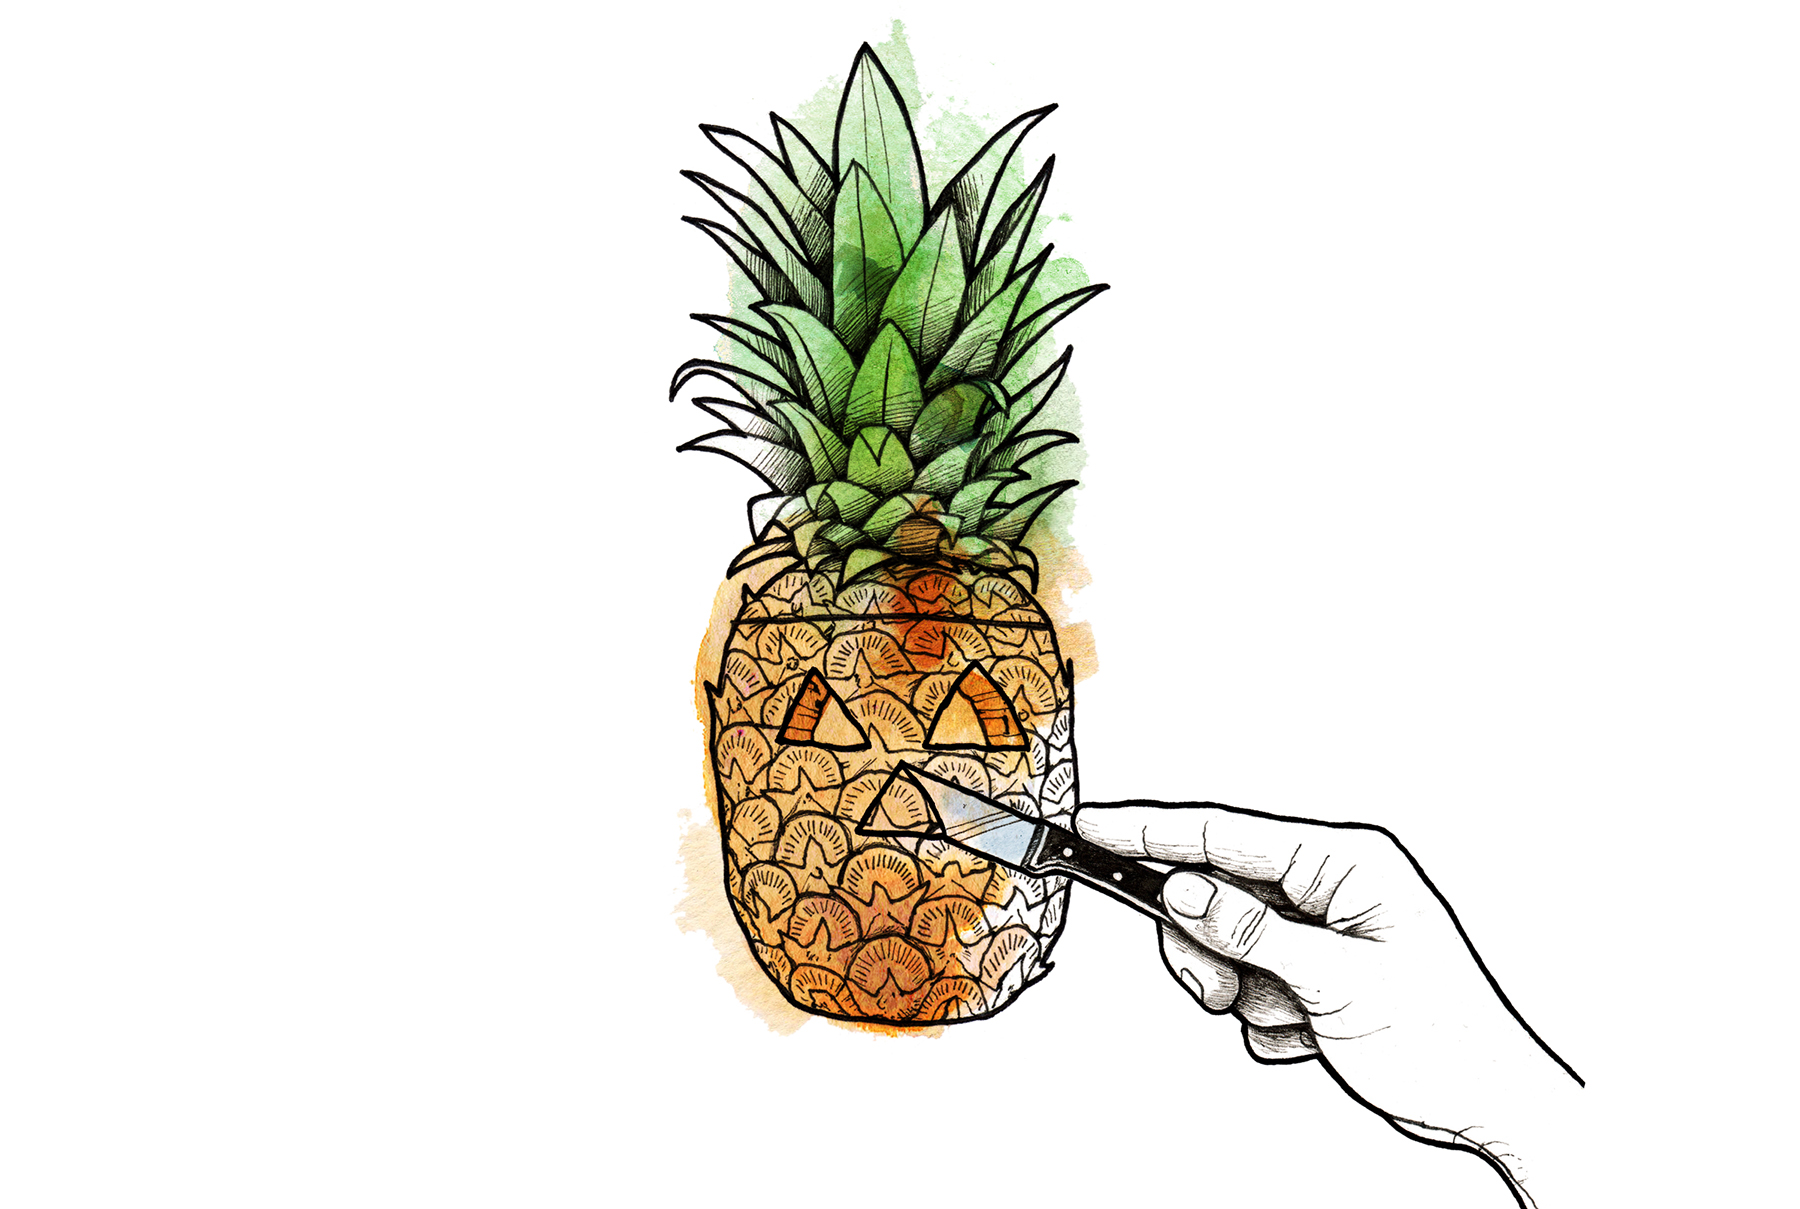 Illustration: Carving a pineapple (How to carve pineapple jack-o-lantern - Carve the Face)